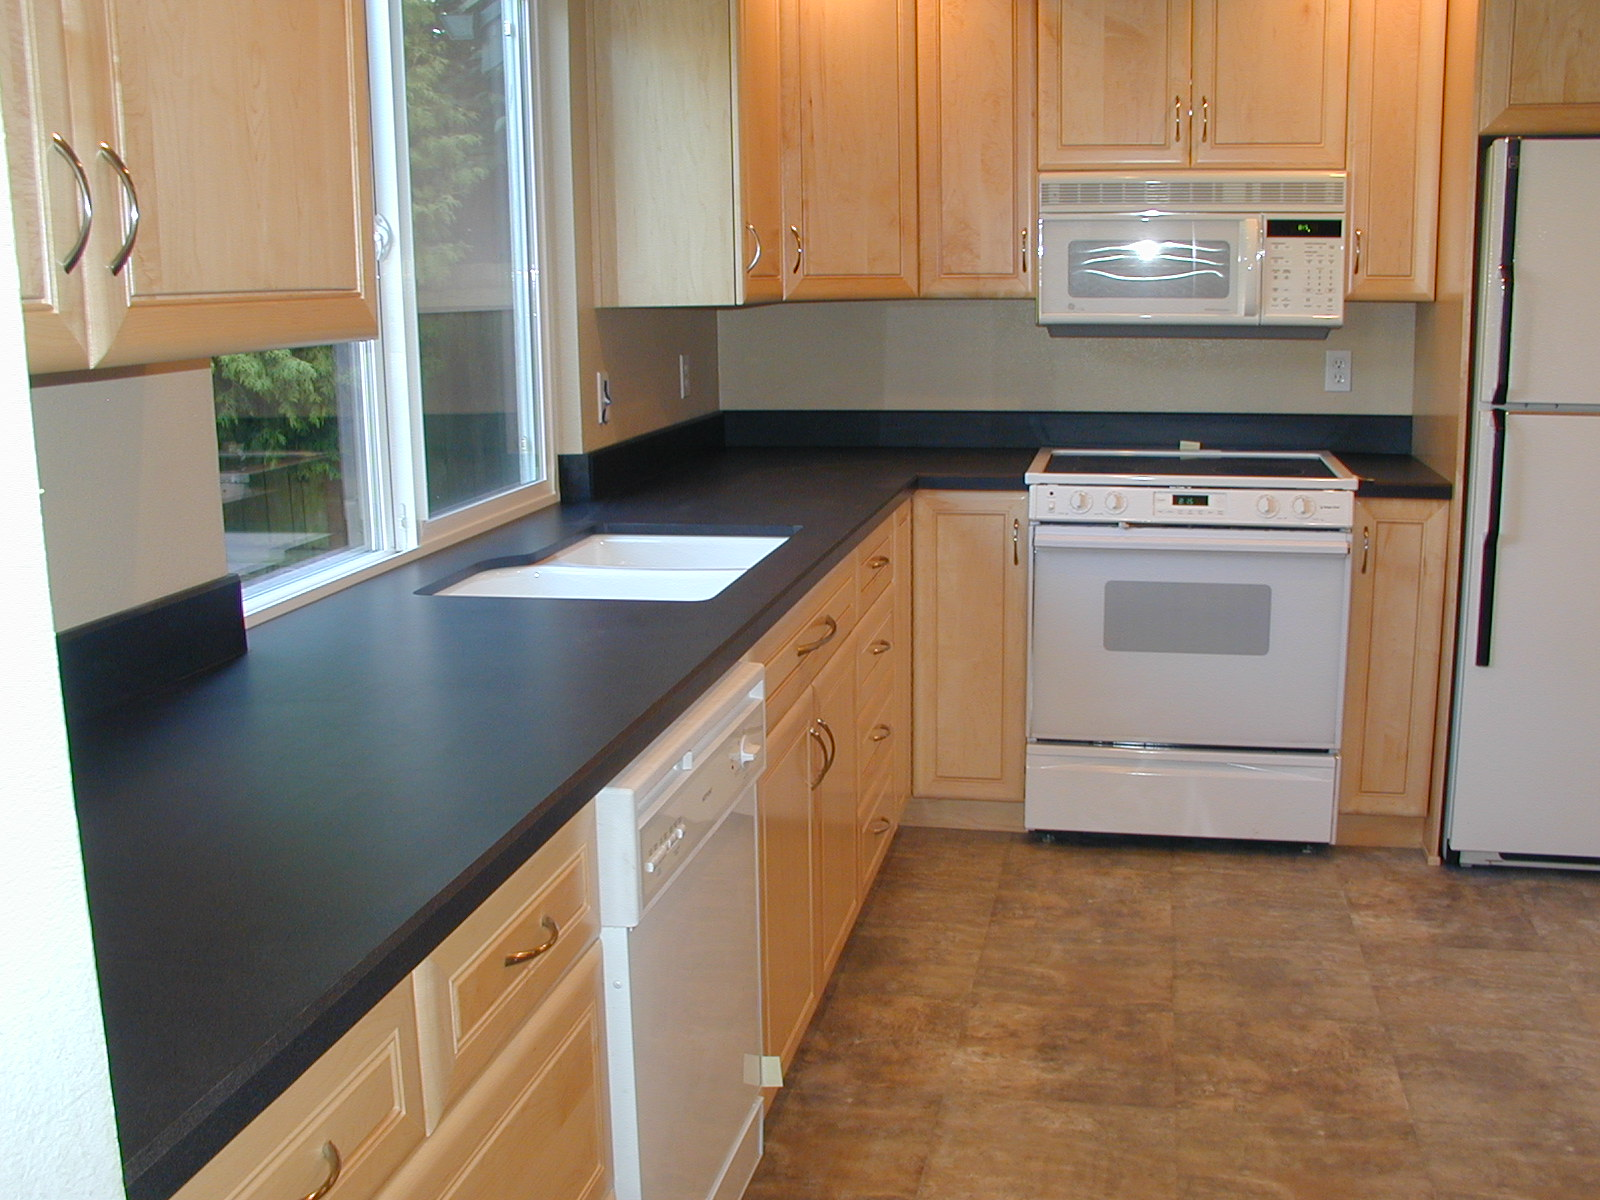 Seattle countertop design and installation, laminate kitchen